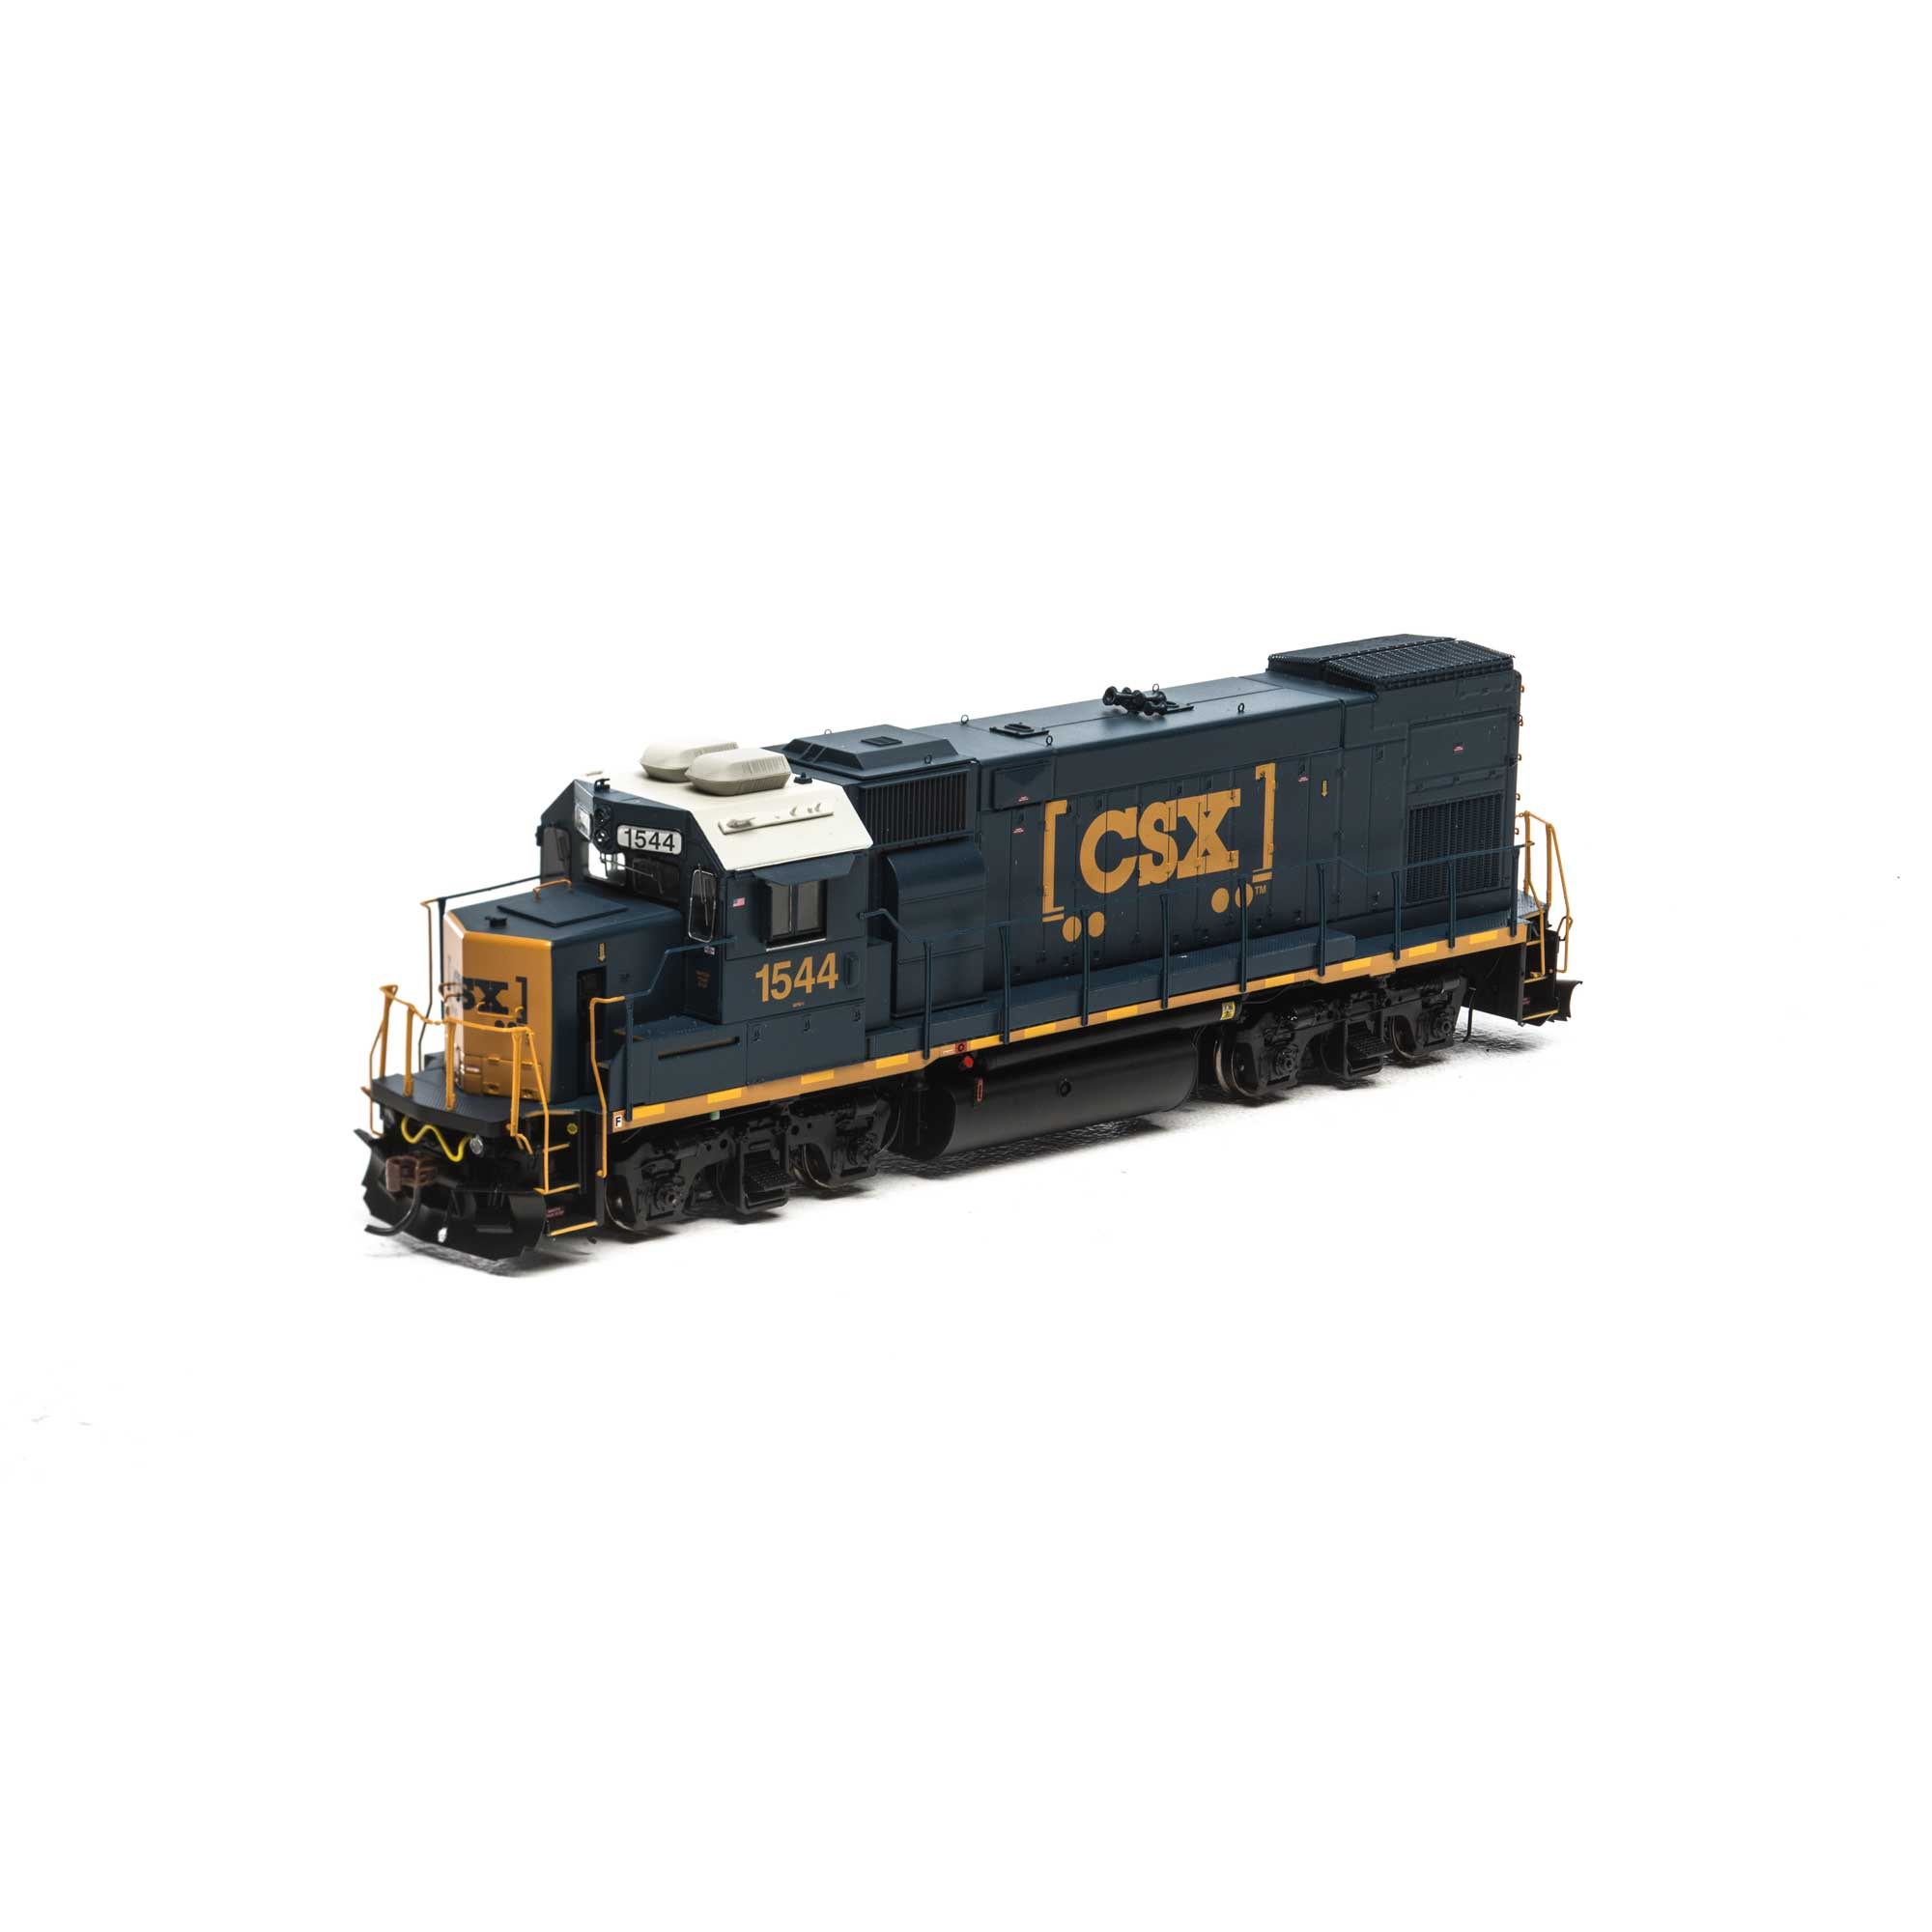 Surprising Ho Gp15 1 W Dcc Sound Csx 1544 Athg16735 Athearn Trains Wiring Cloud Picalendutblikvittorg